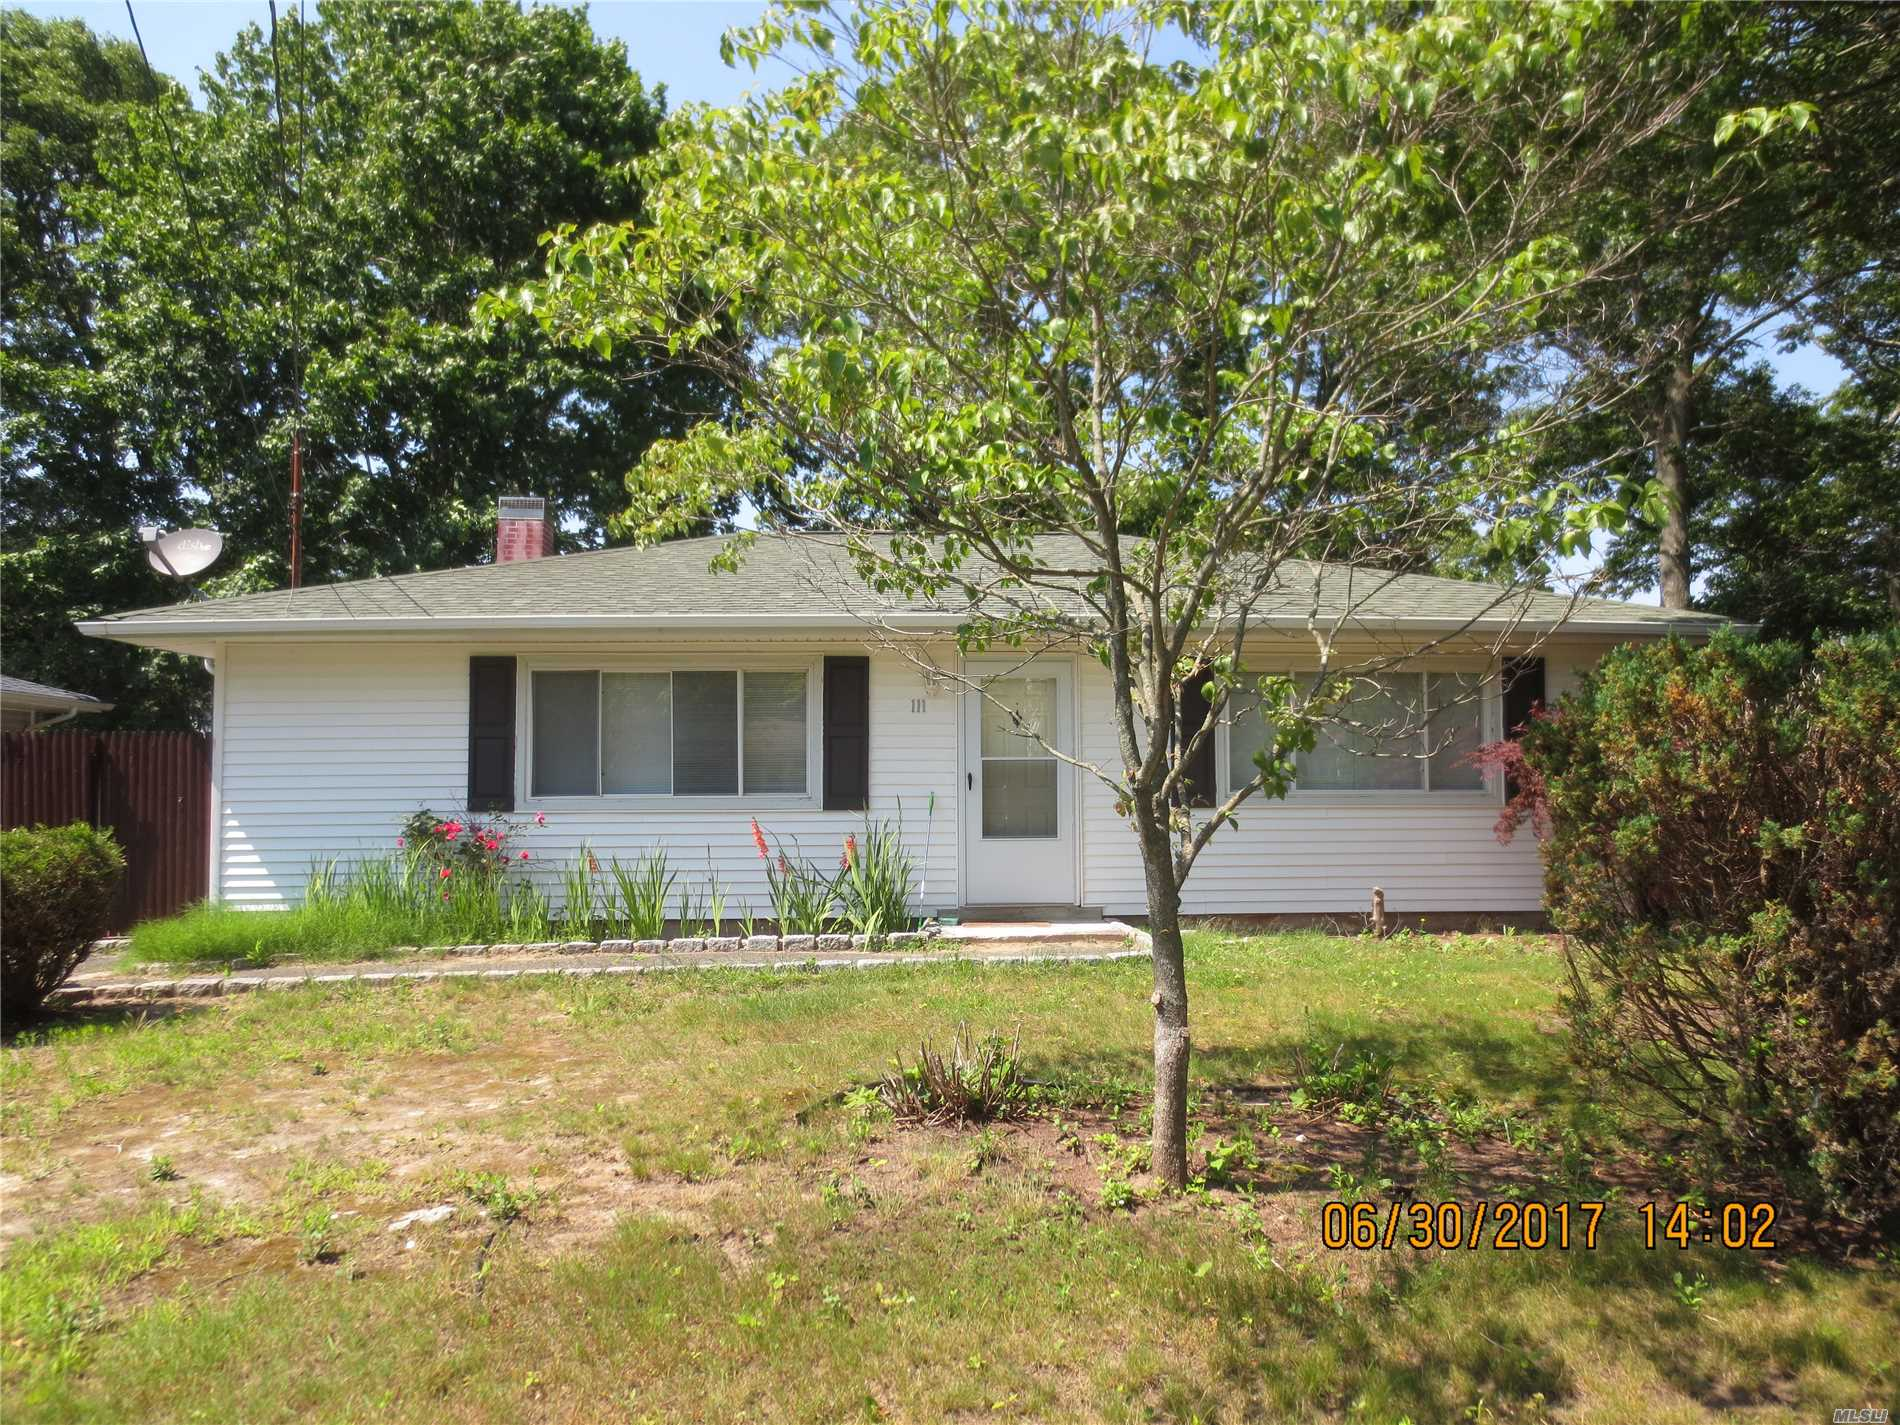 Clean And Comfortable, 3 Bedrooms, Full Bath, Eat-In-Kitchen, Private Driveway, Fenced Backyard, Attic Storage. Online Application Required. Small Pet May Be Considered With Possible Additional Security. Landlord Requires Tenant To Obtain Renters Insurance Policy.